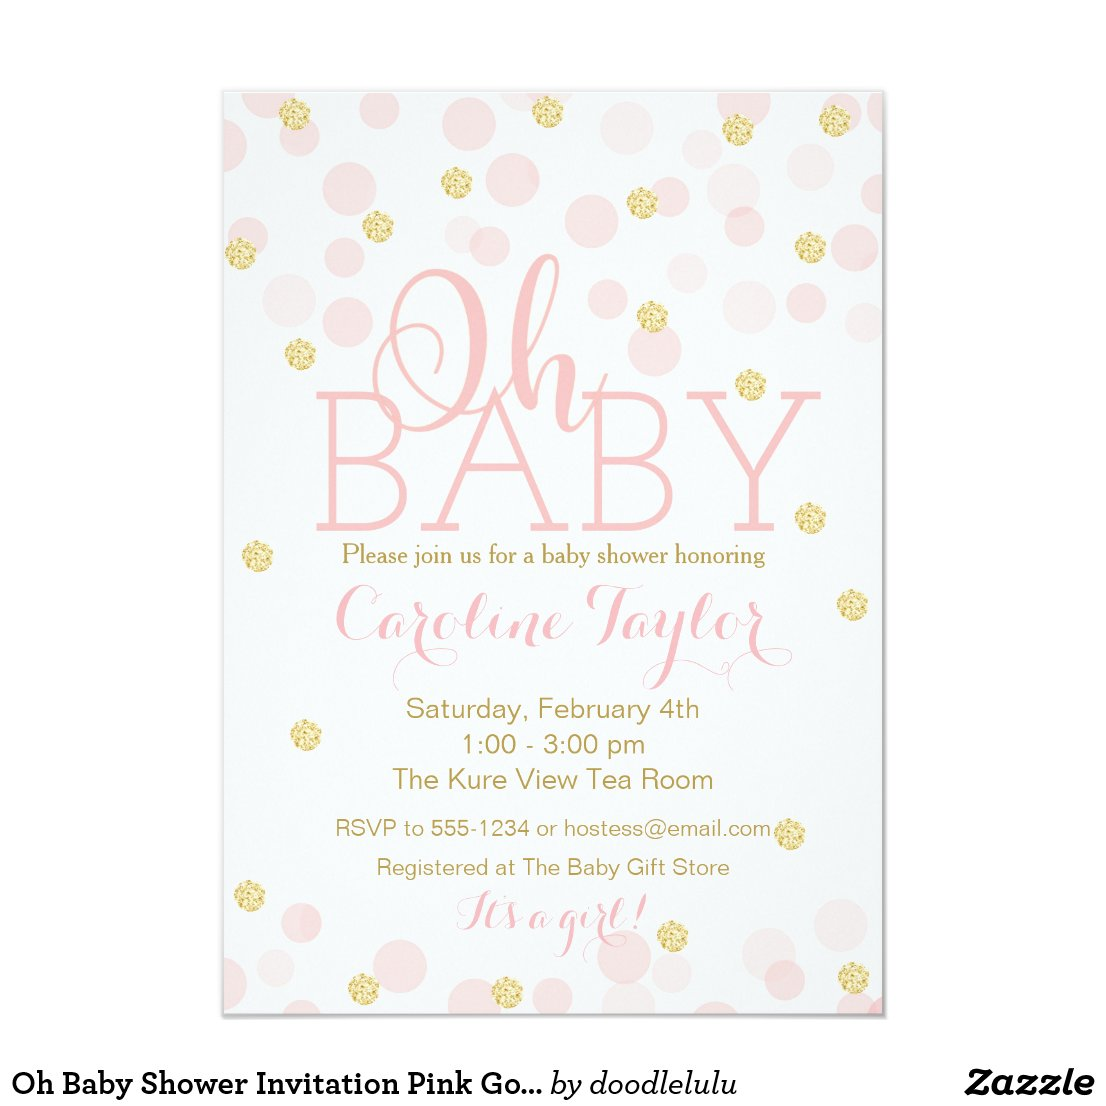 Oh Baby Shower Invitation Pink Gold Glitter